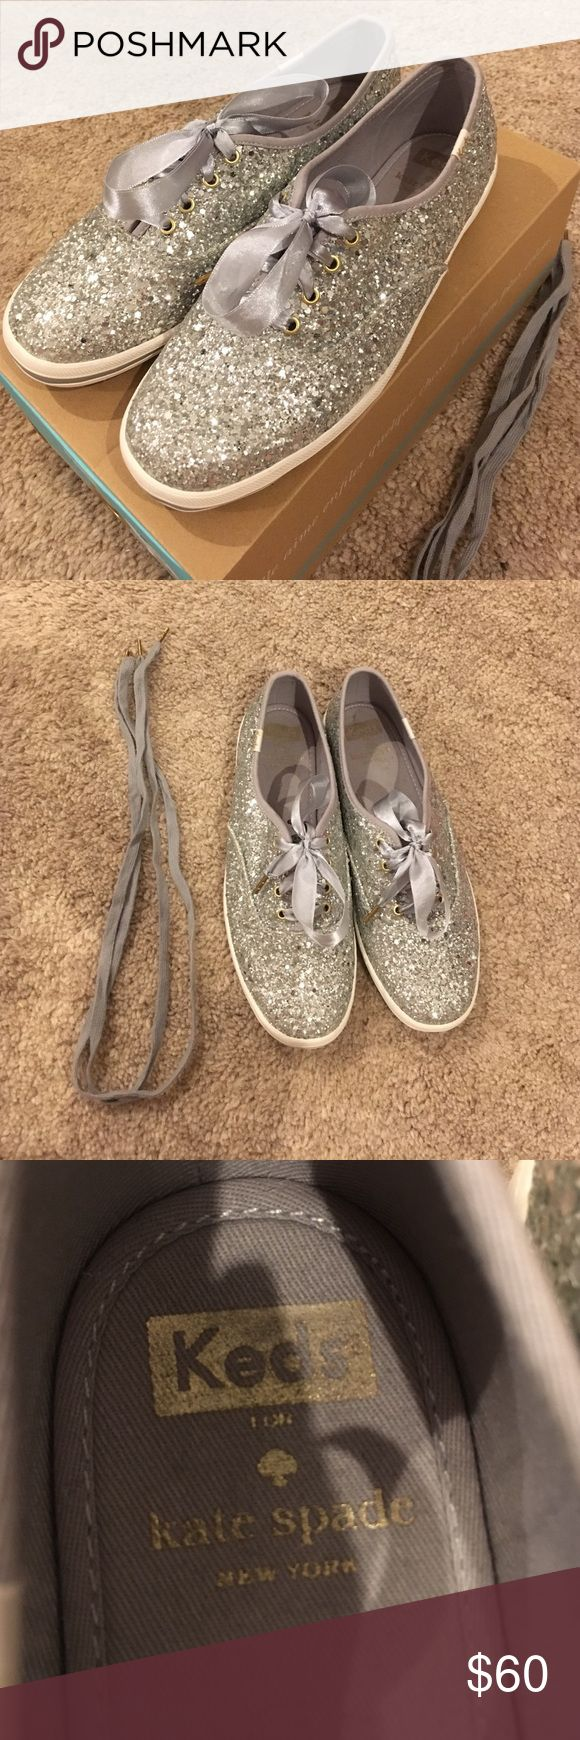 Keds for Kate Spade sparkly silver Keds ‼️Never Worn‼️ Brand New‼️ Keds made for Kate Spade. Come with the ribbon and regular shoe laces. kate spade Shoes Sneakers